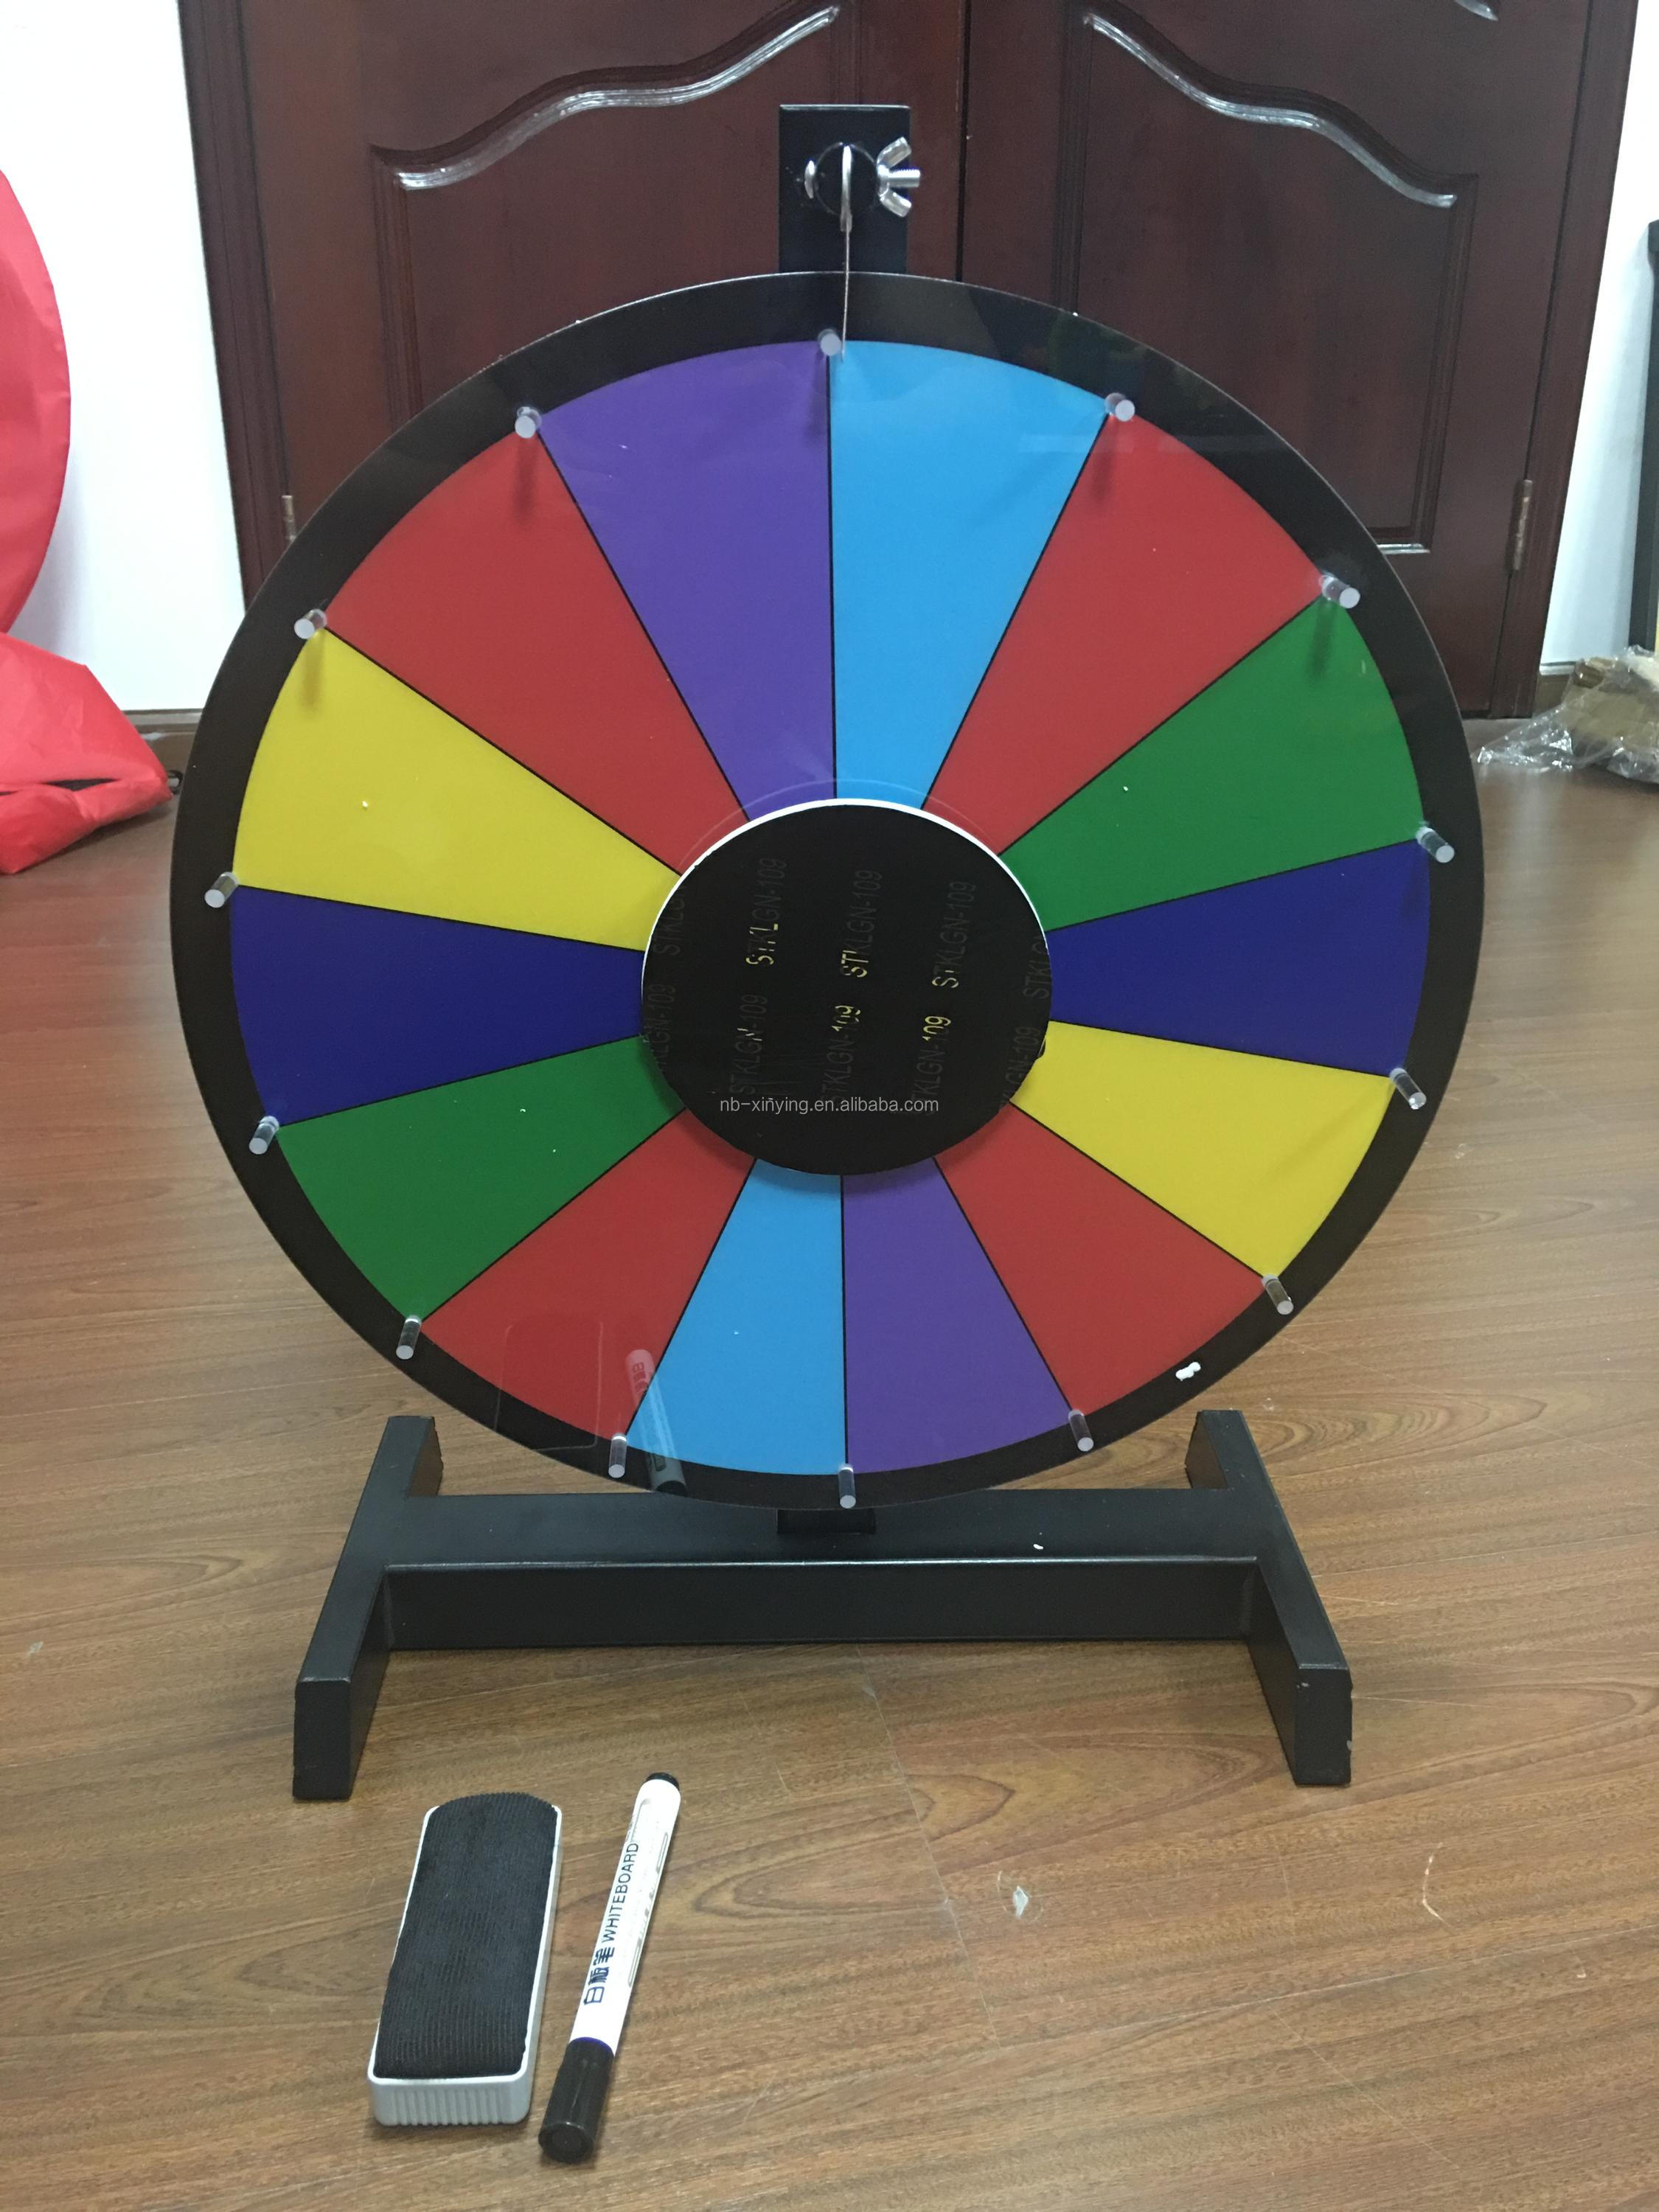 Abnehmbare Composable Tabletop Spinning Preis Rad Spin,Um Rad Spiel ...